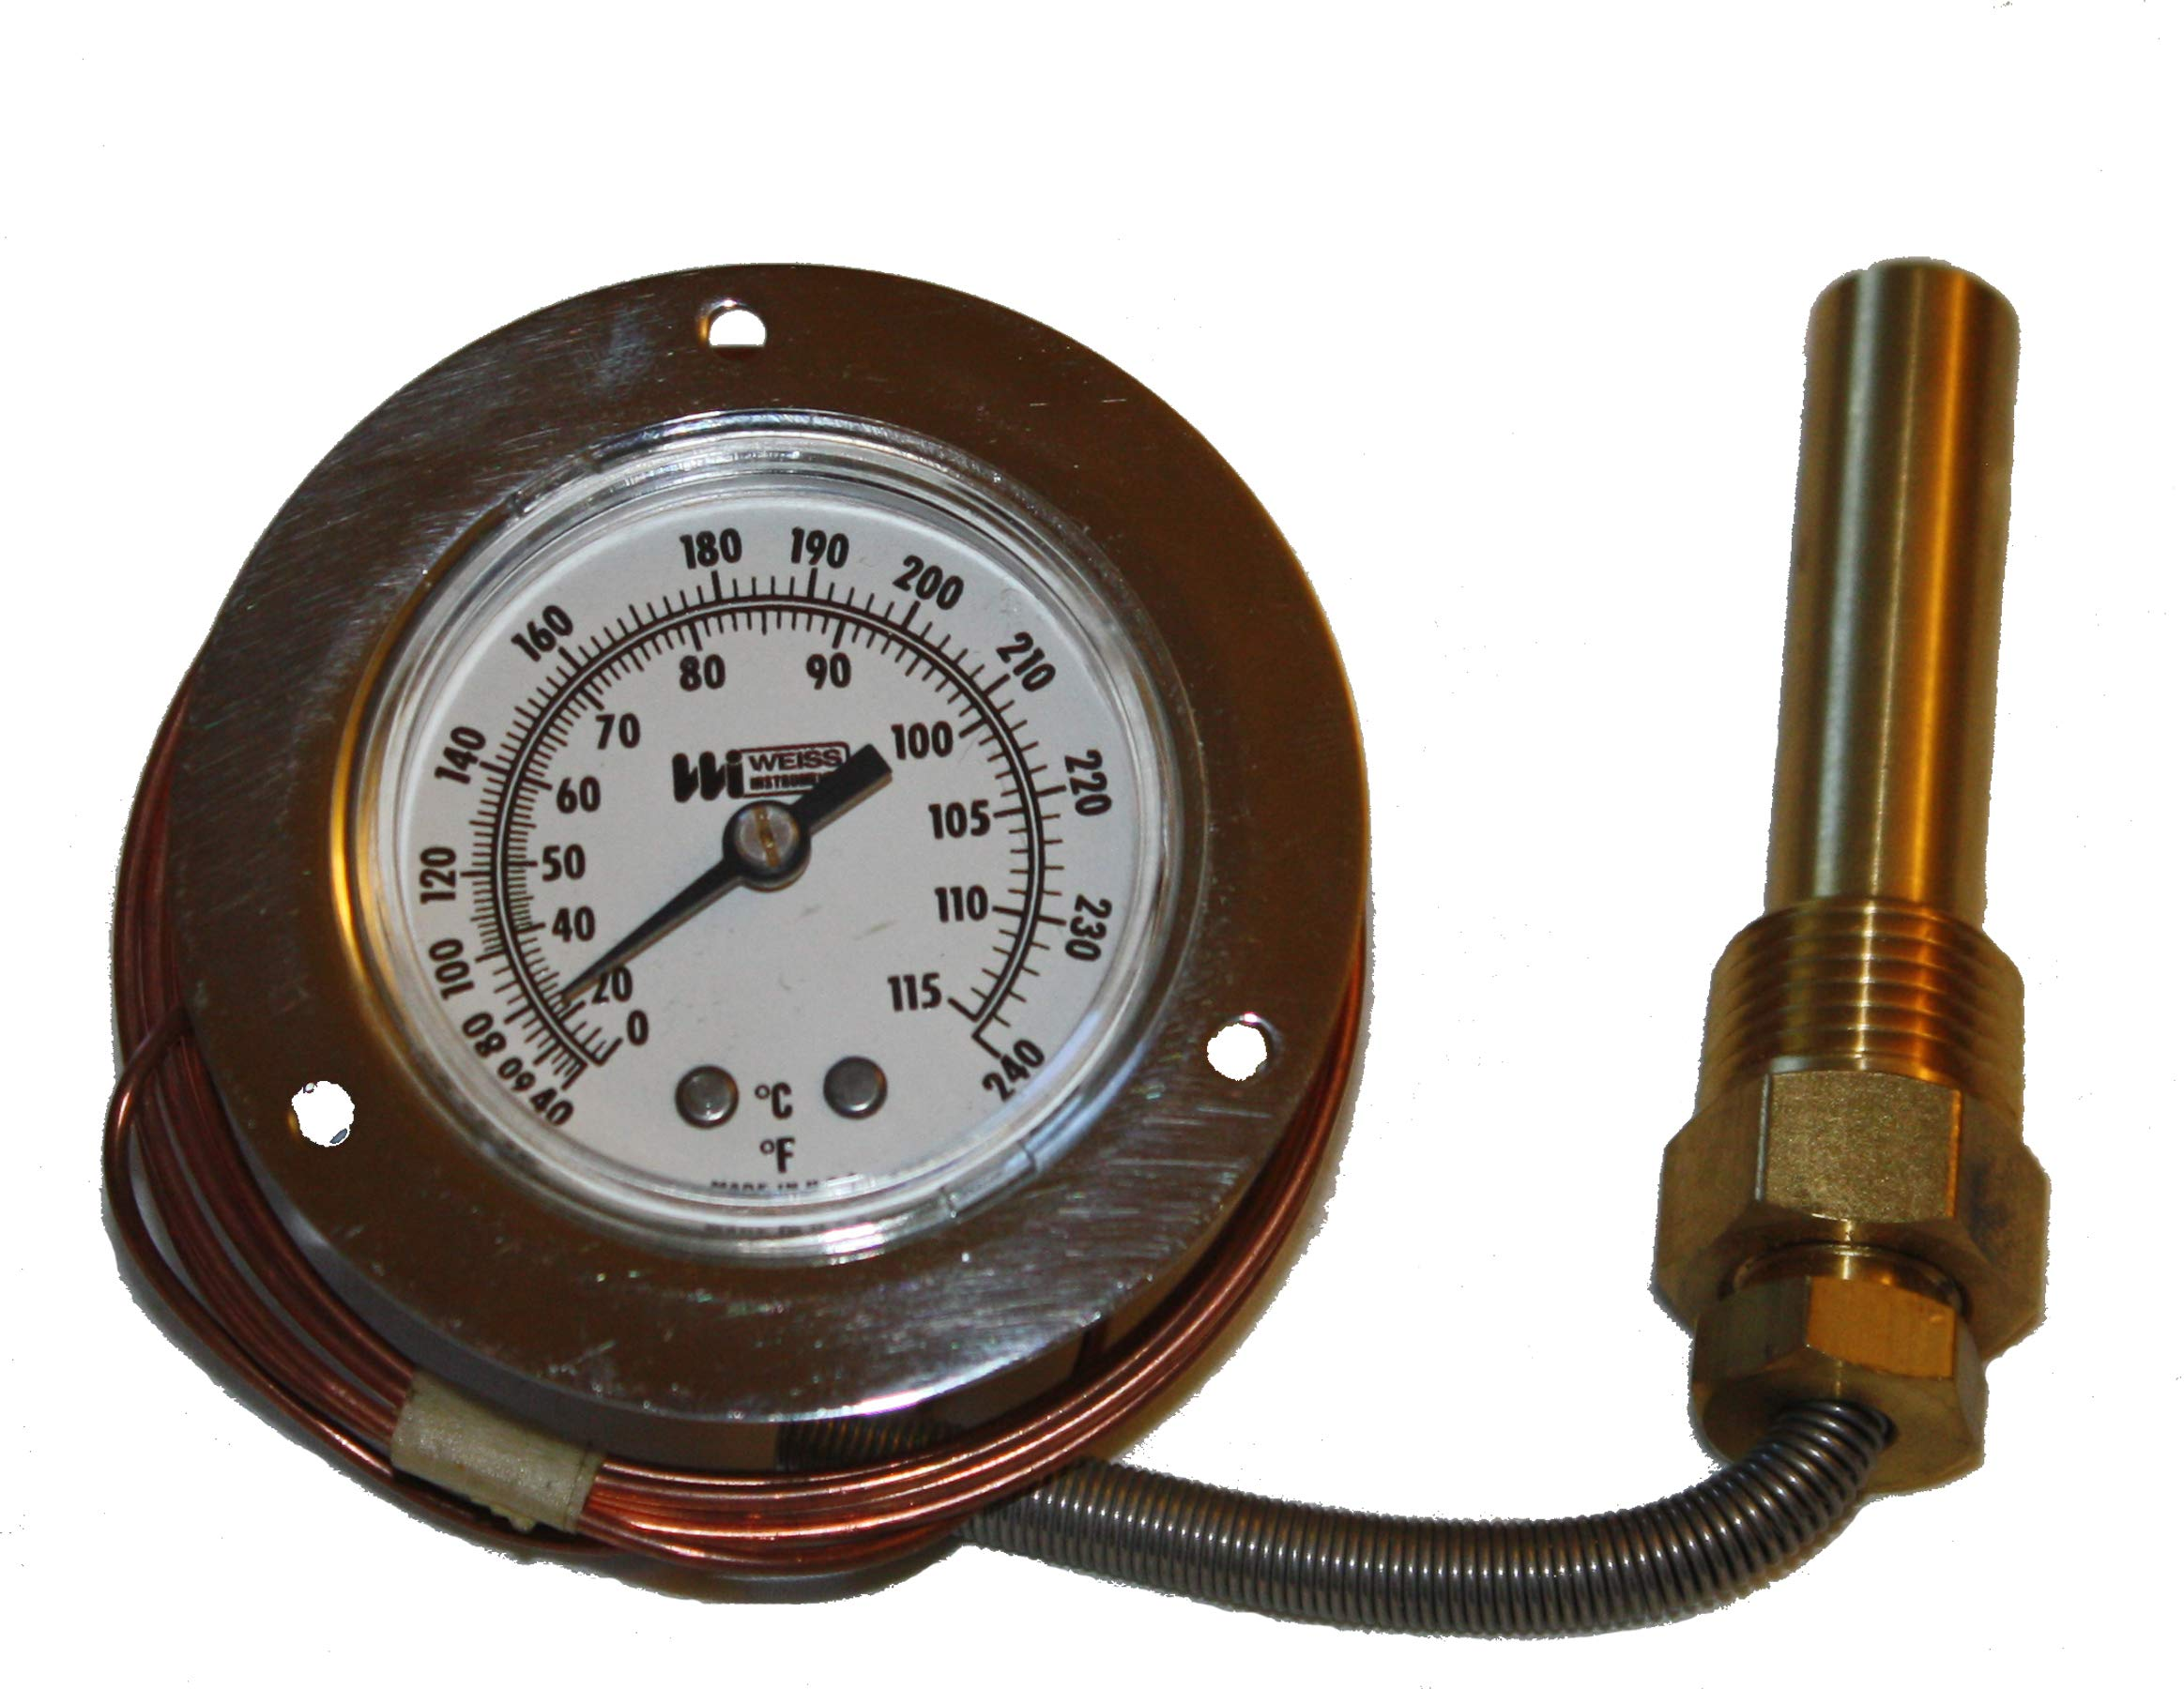 Weiss Vapor Thermometer 40-240 Fahrenheit 0-115 Celsius by Weiss